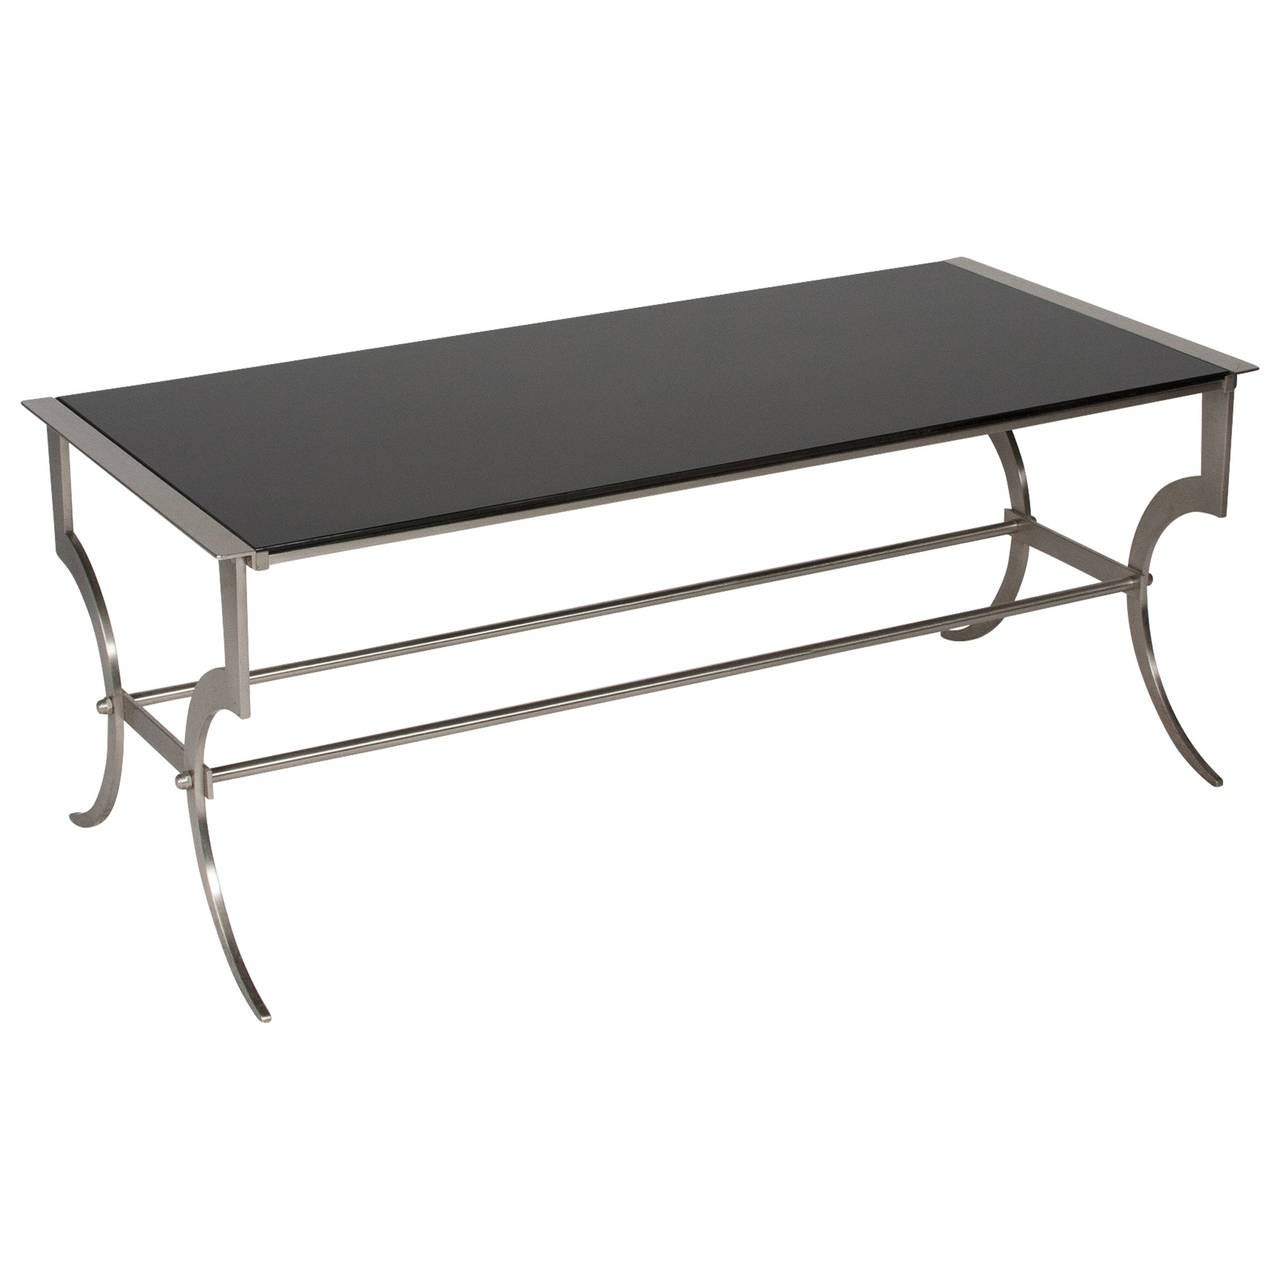 Black glass coffee table by maison jansen 1960s at 1stdibs for Black glass coffee table